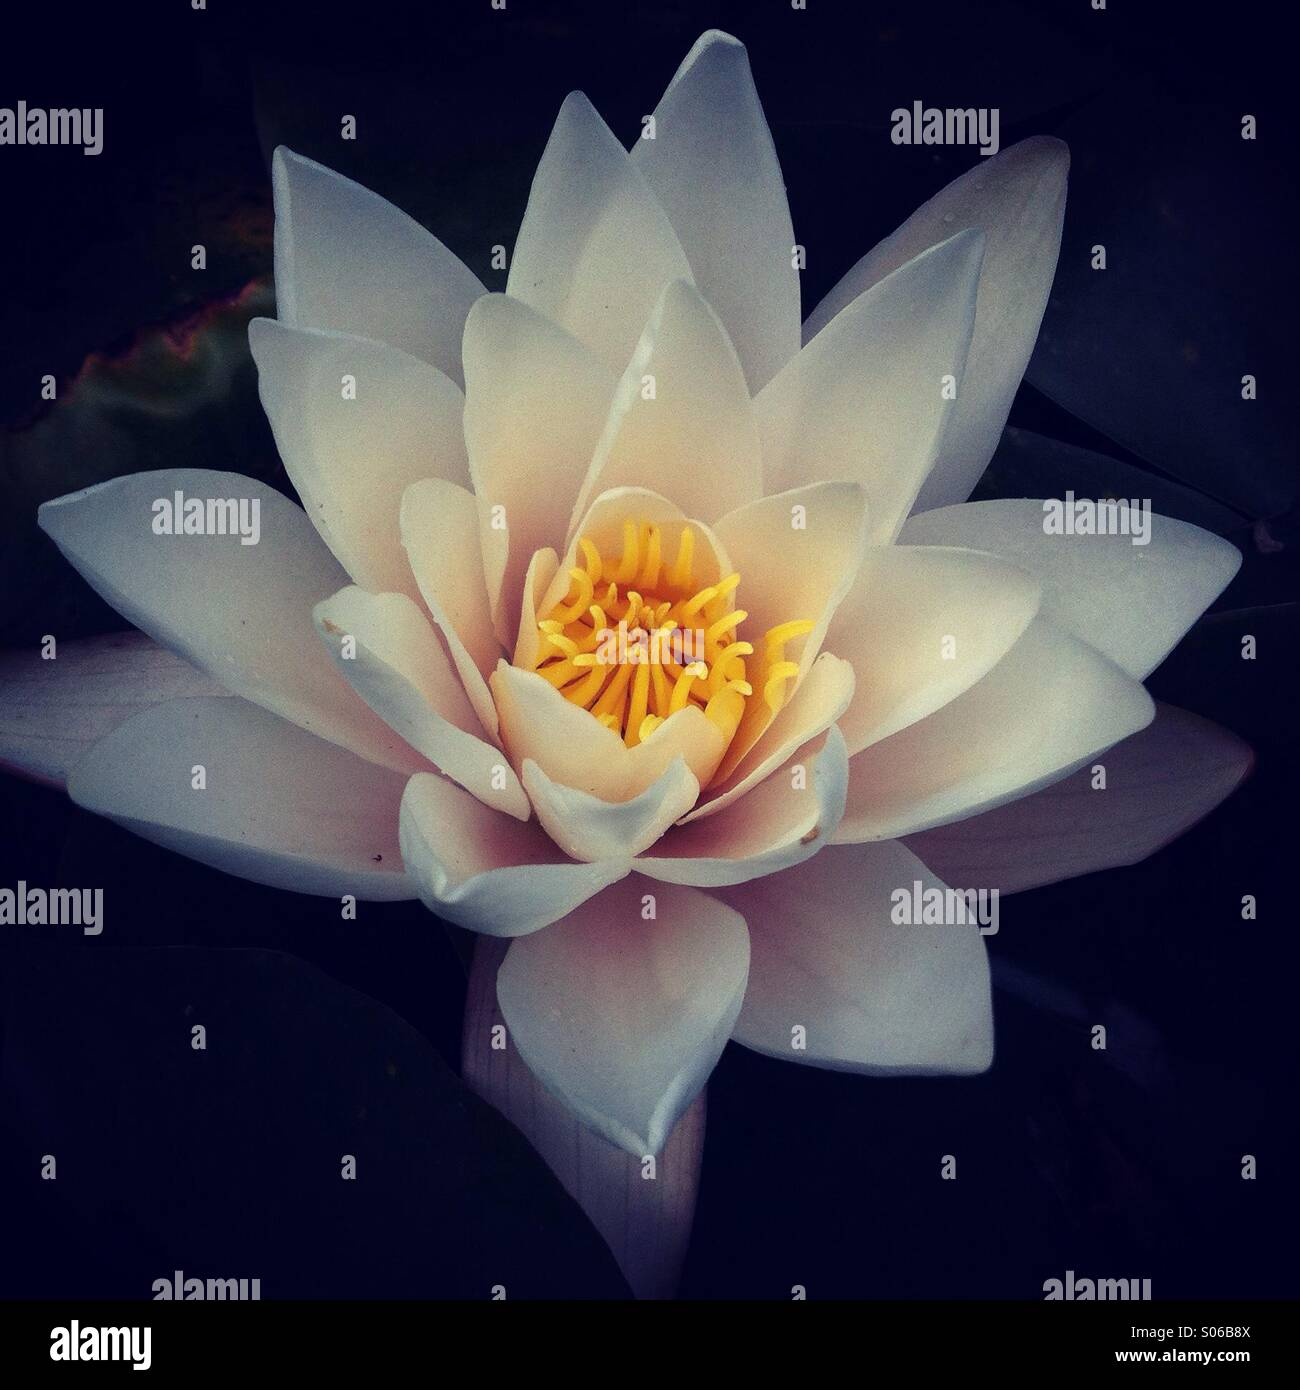 A water lily bloom opens in the late evening sunshine. - Stock Image